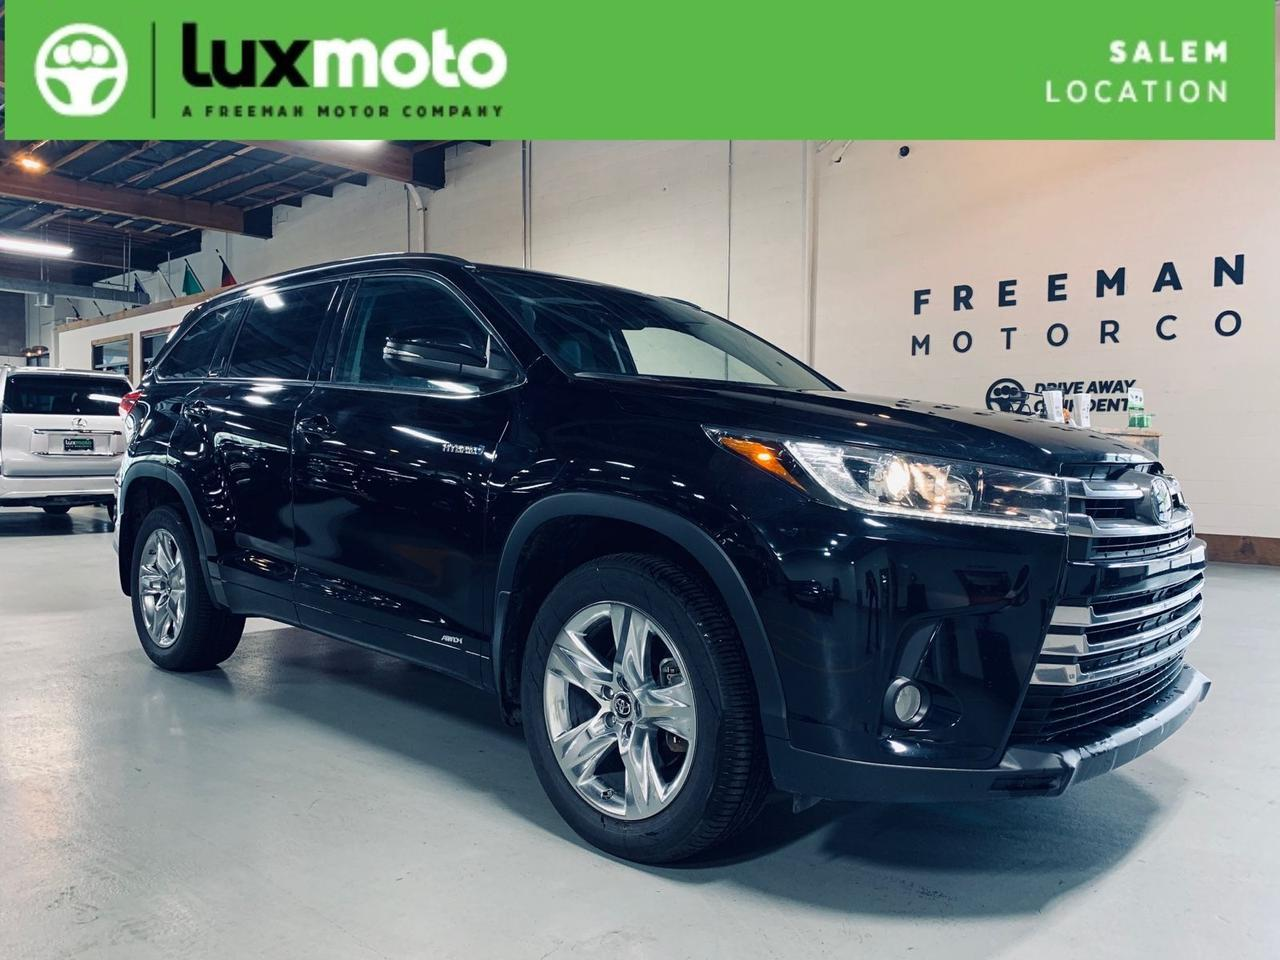 2018 Toyota Highlander AWD Hybrid Limited Rear DVD System Portland OR